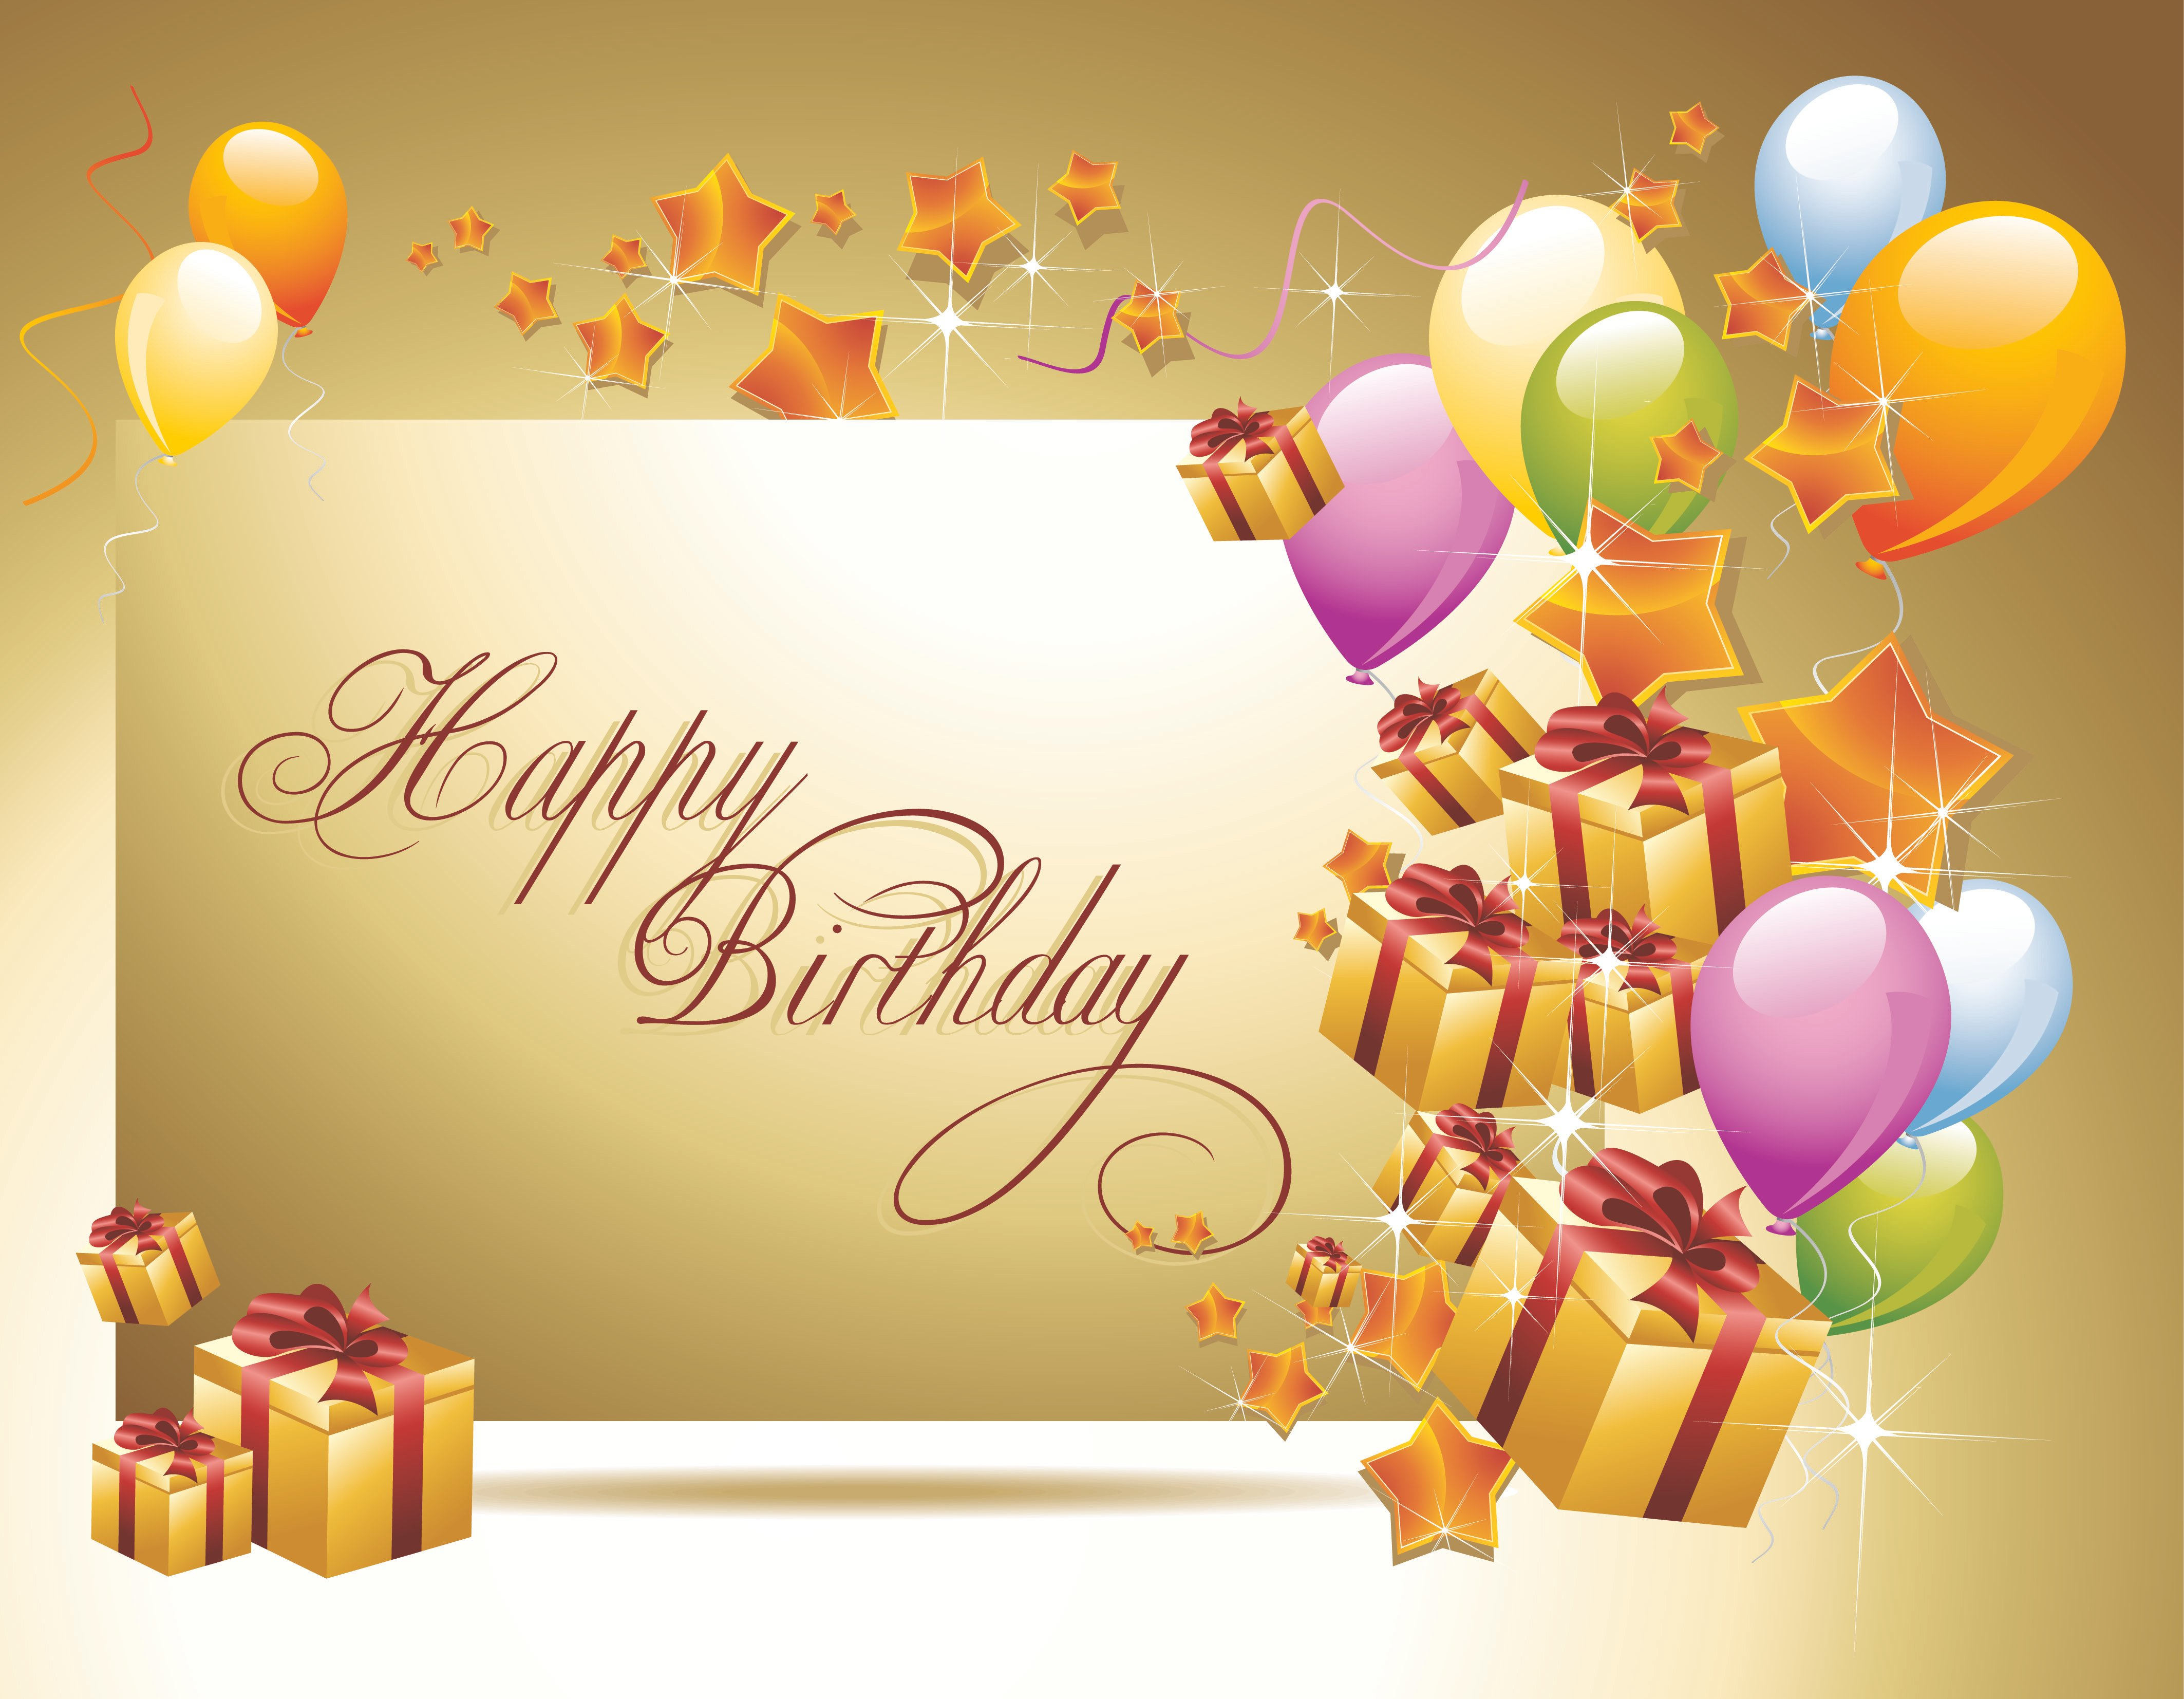 birthday golden background wallpapers and images   wallpapers 4252x3307